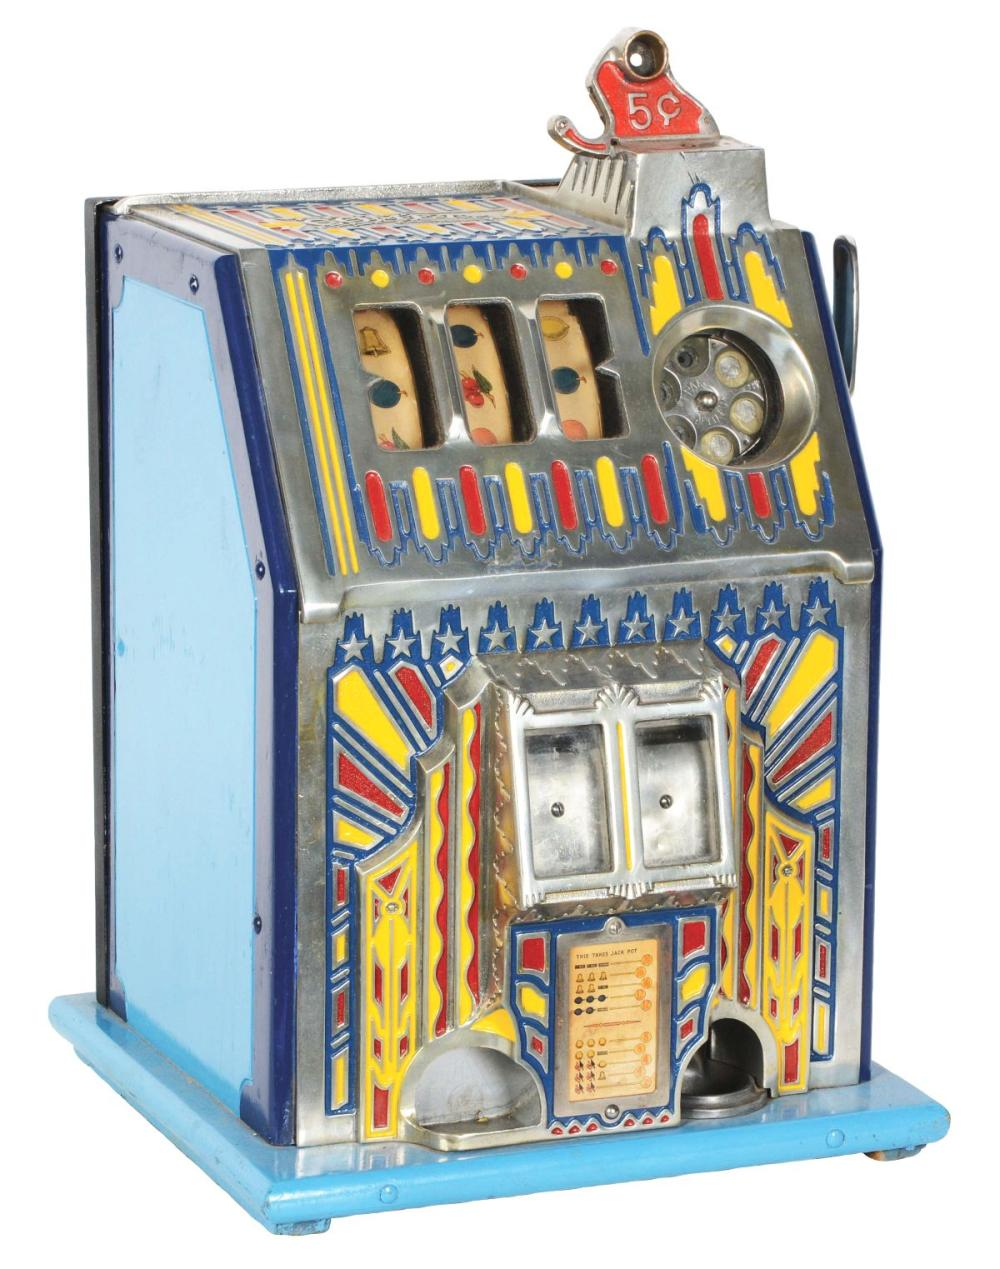 5¢ PACE COMET SLOT MACHINE.